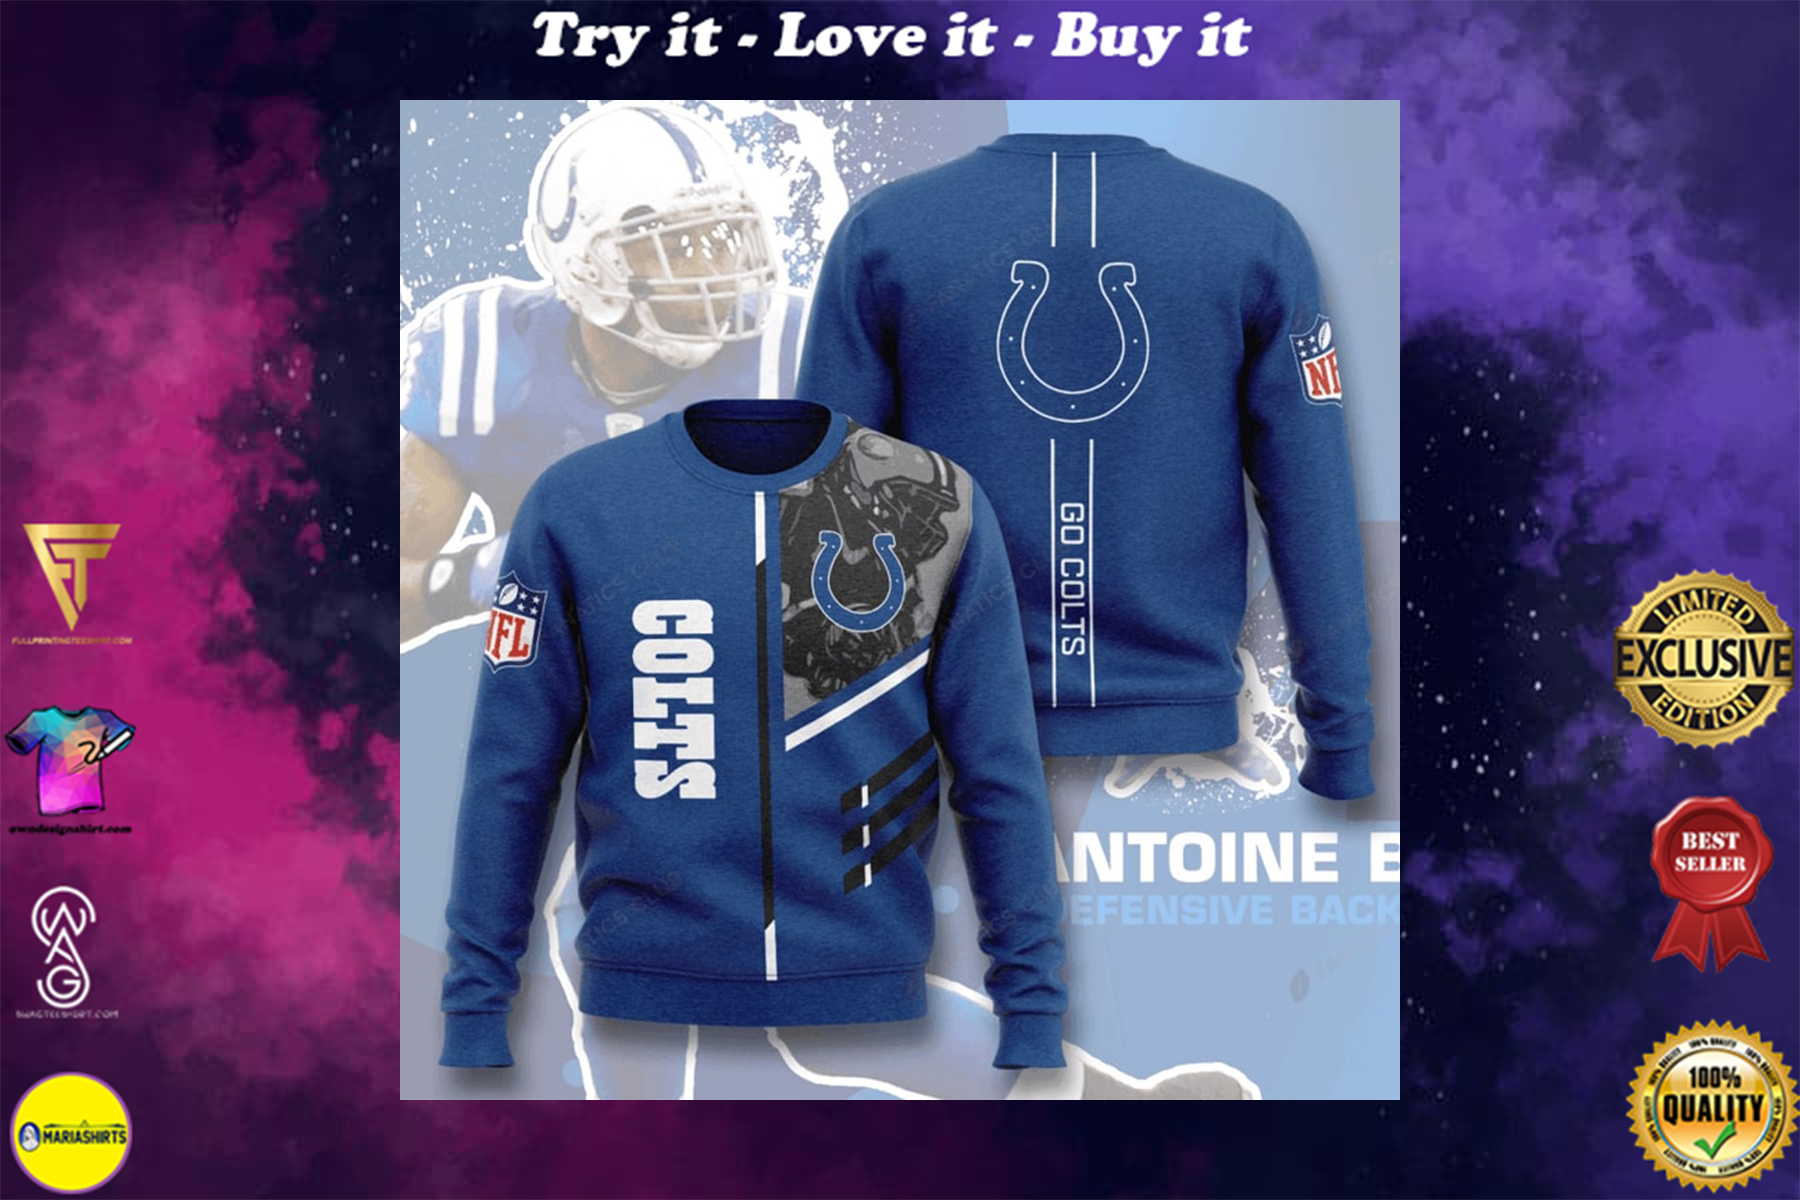 [highest selling] national football league indianapolis colts go colts full printing ugly sweater - maria